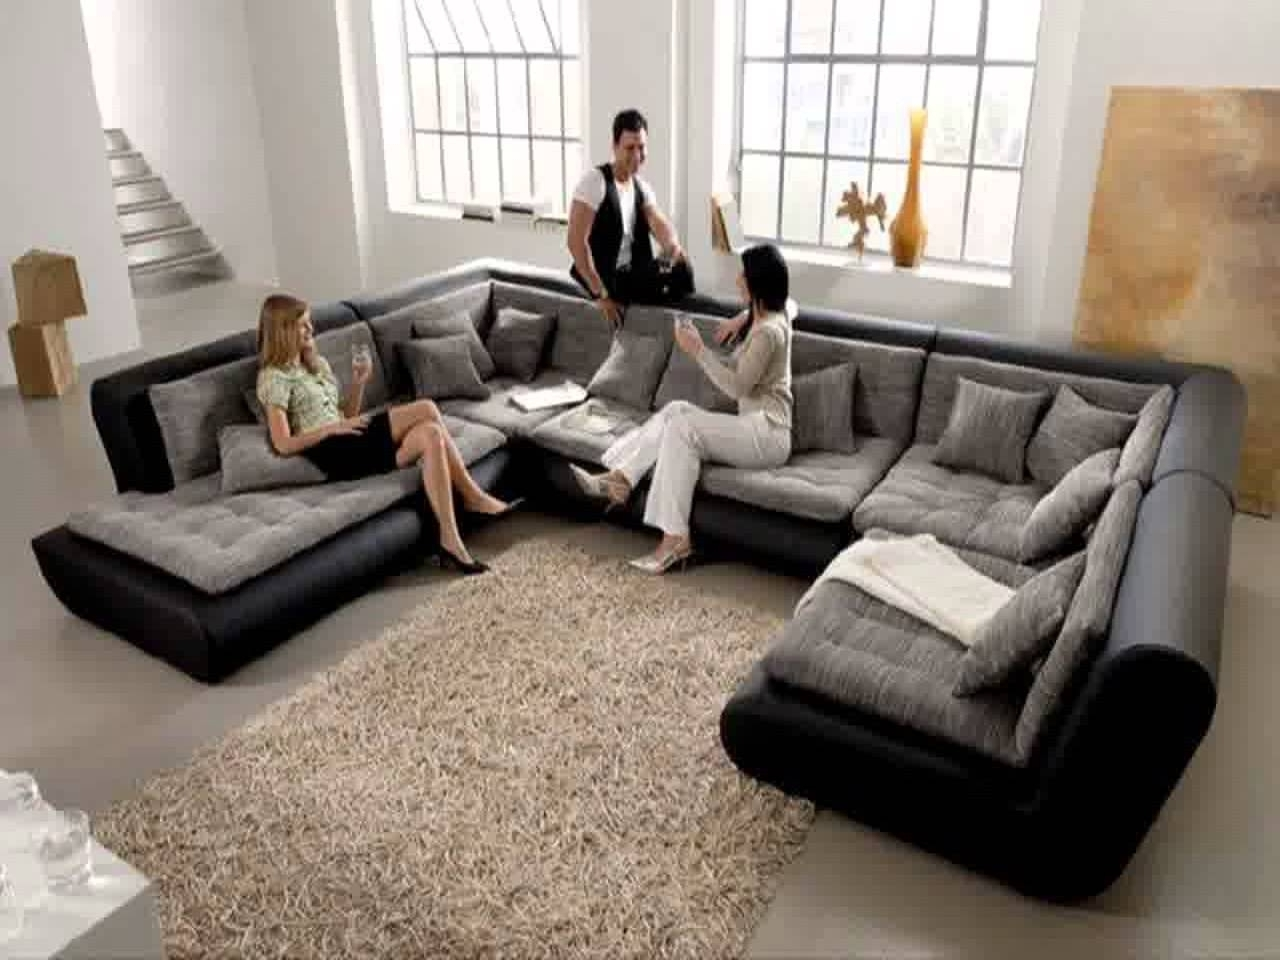 Favorite Sectional Sofas Bassett Youtube Best Sectional Sofa Brands Regarding Sectional Sofas At Bassett (View 10 of 15)